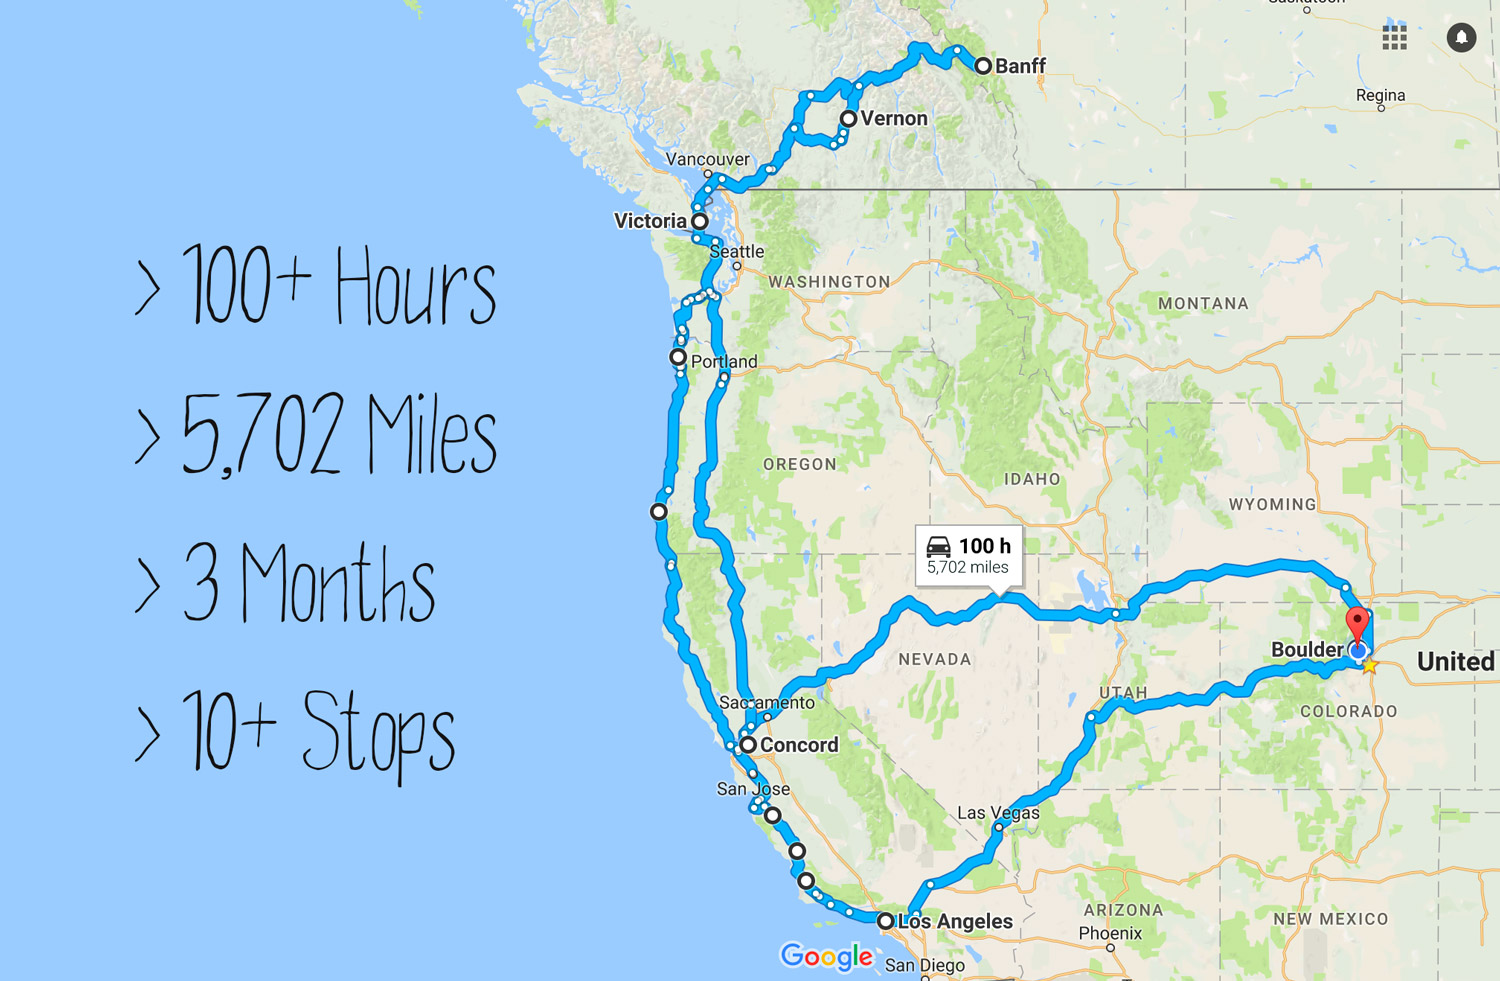 roadtrip_roadmap.jpg